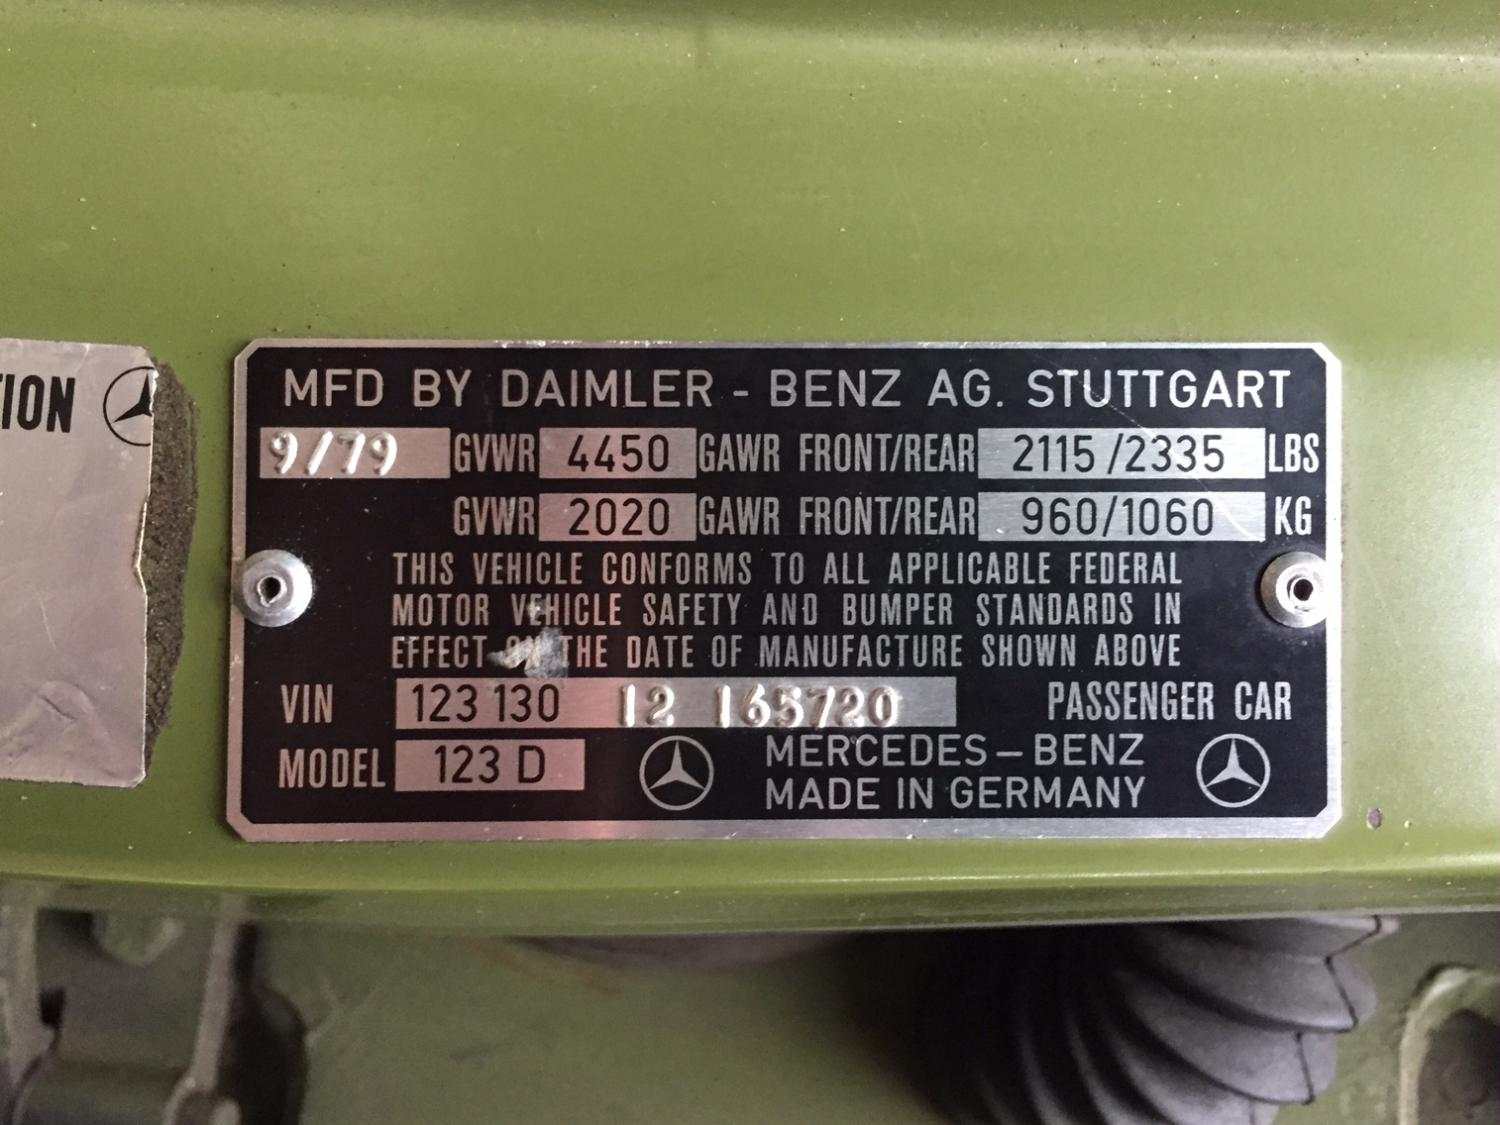 Chaise Number Help With Chassis Number Id Peachparts Mercedes Benz Forum